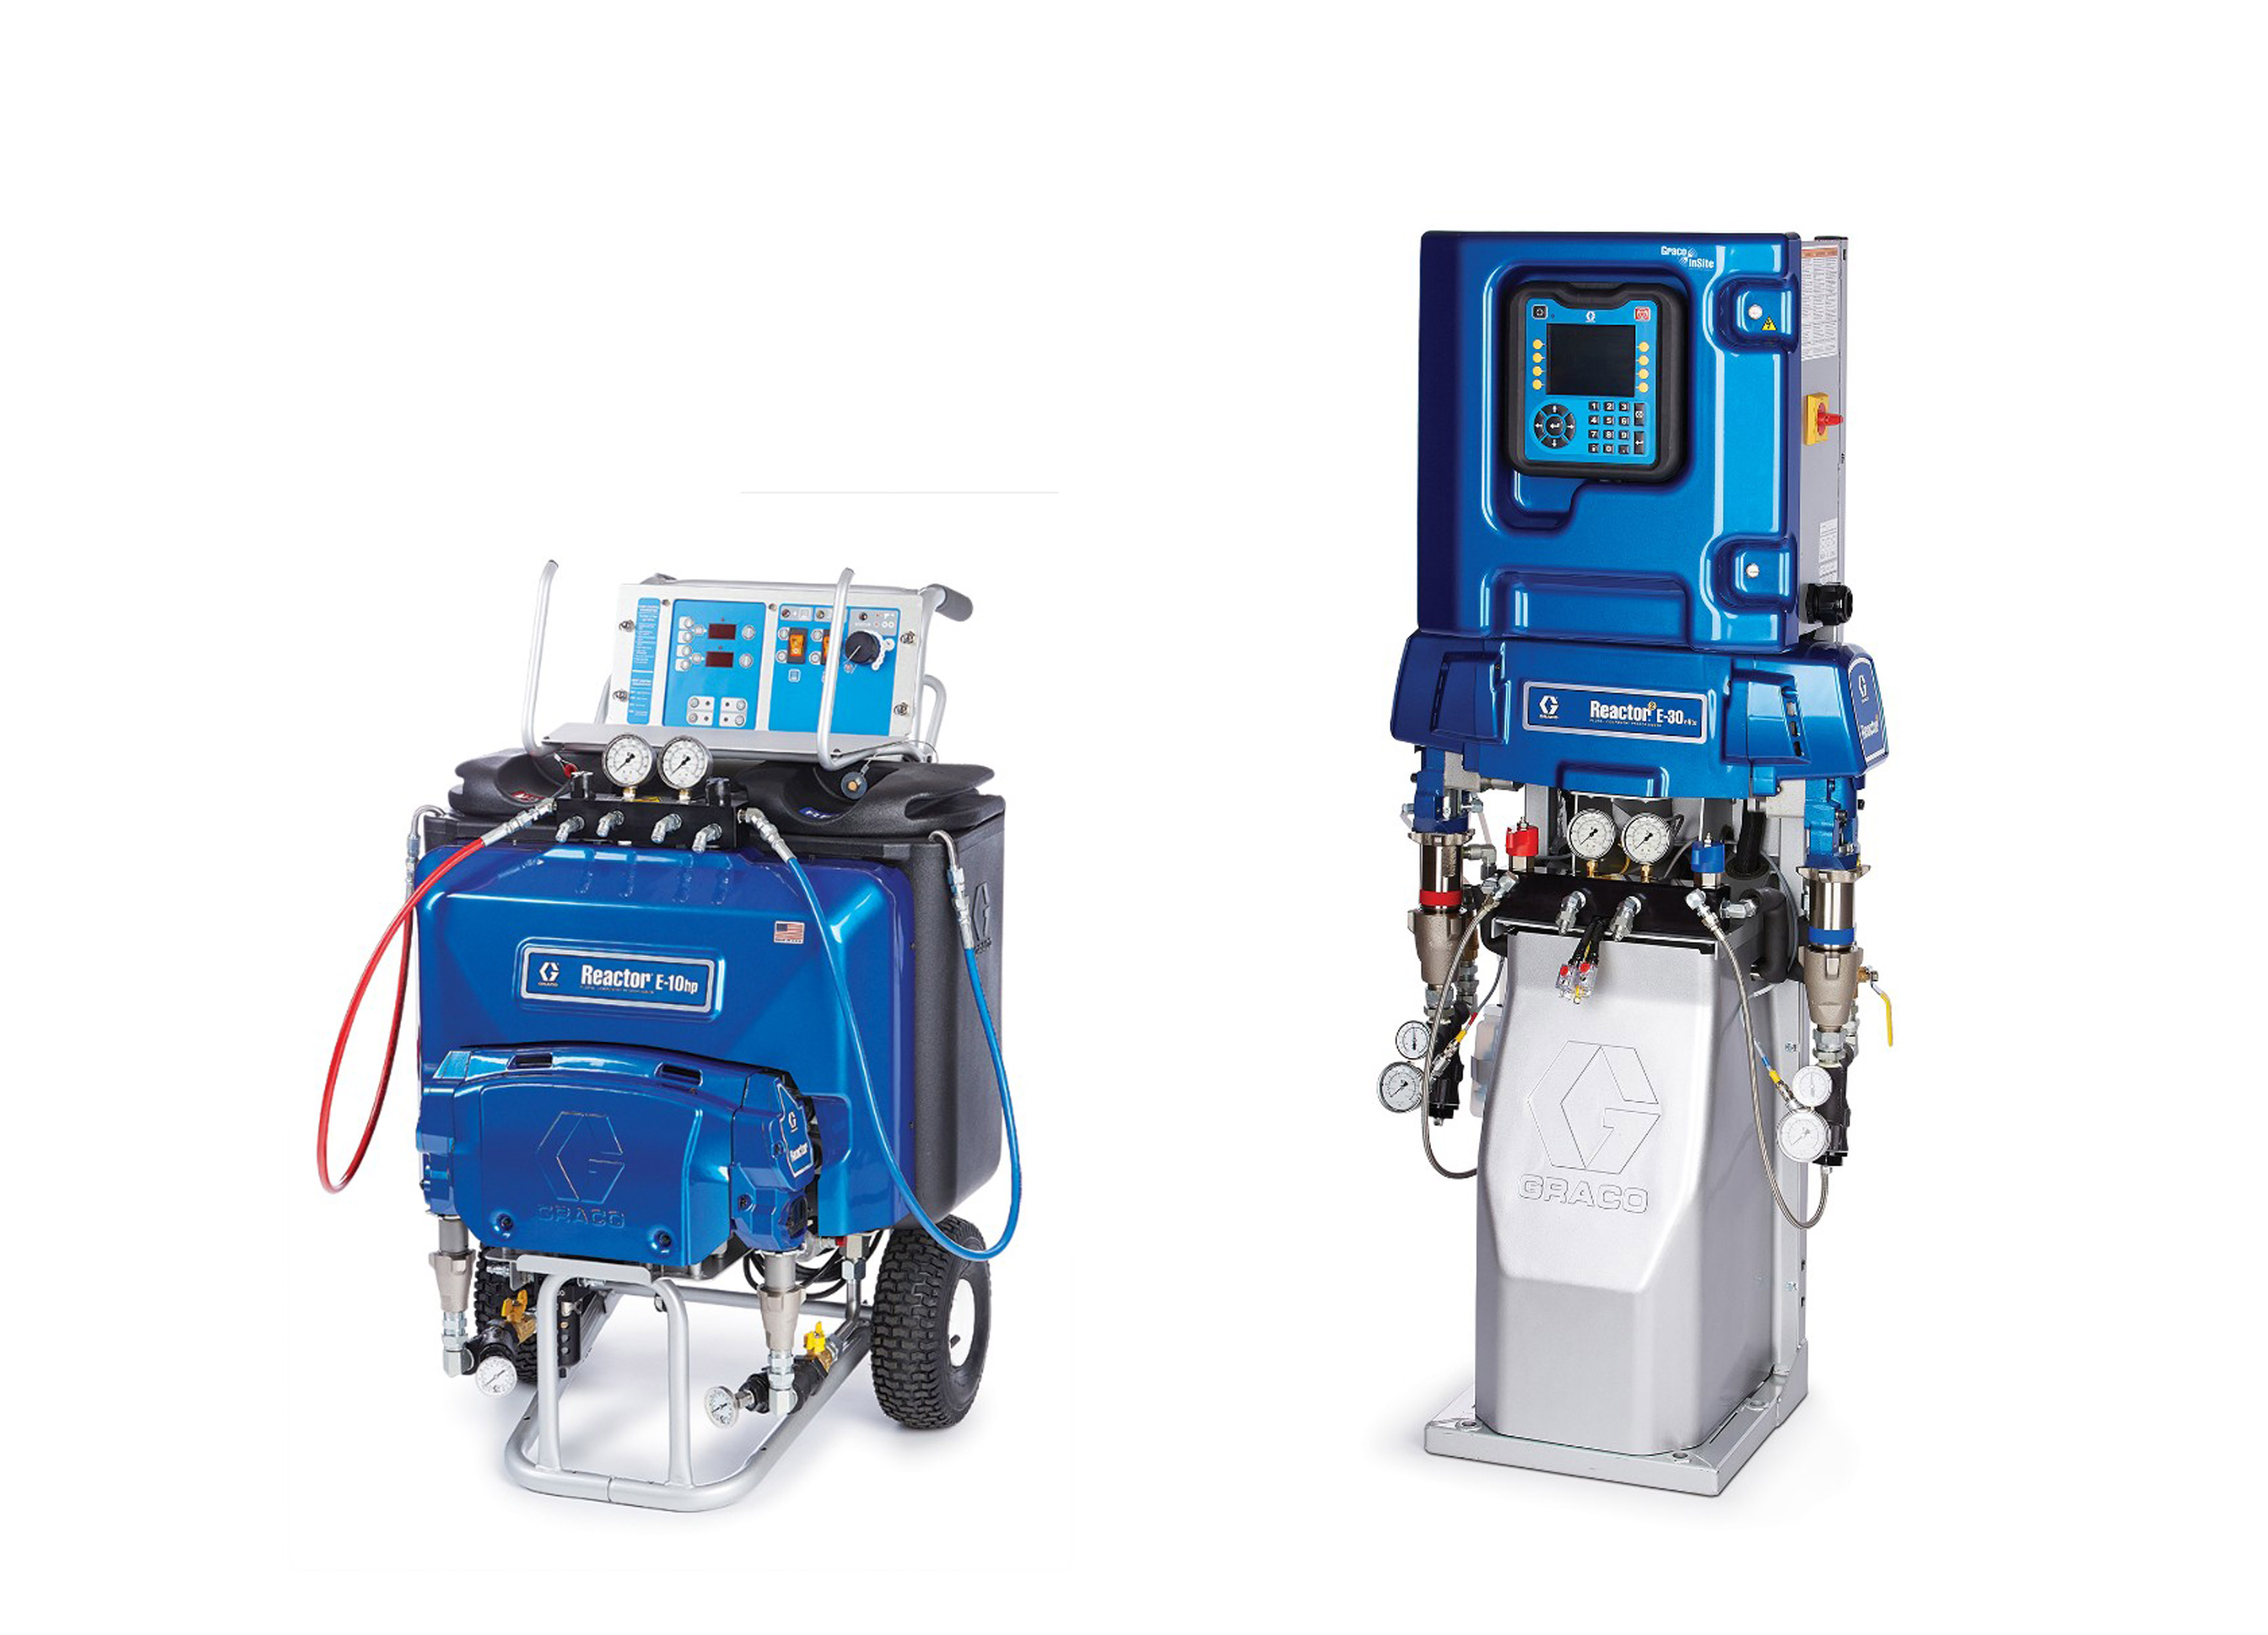 Graco Reactors - Plural Equipment for Polyurea and Foam